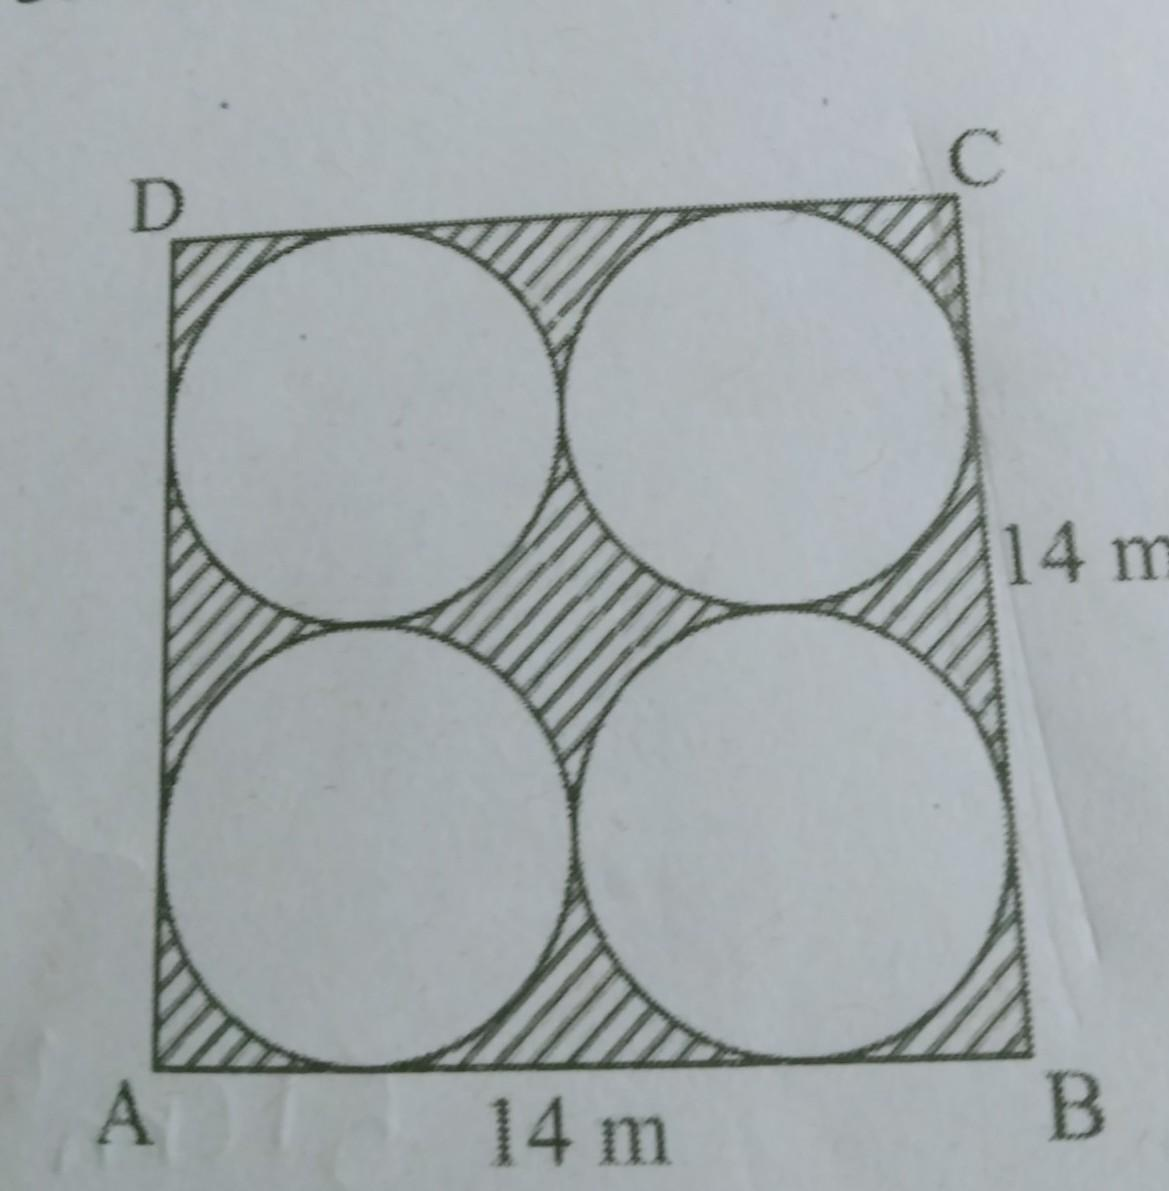 find the shaded area in fig - Brainly.in